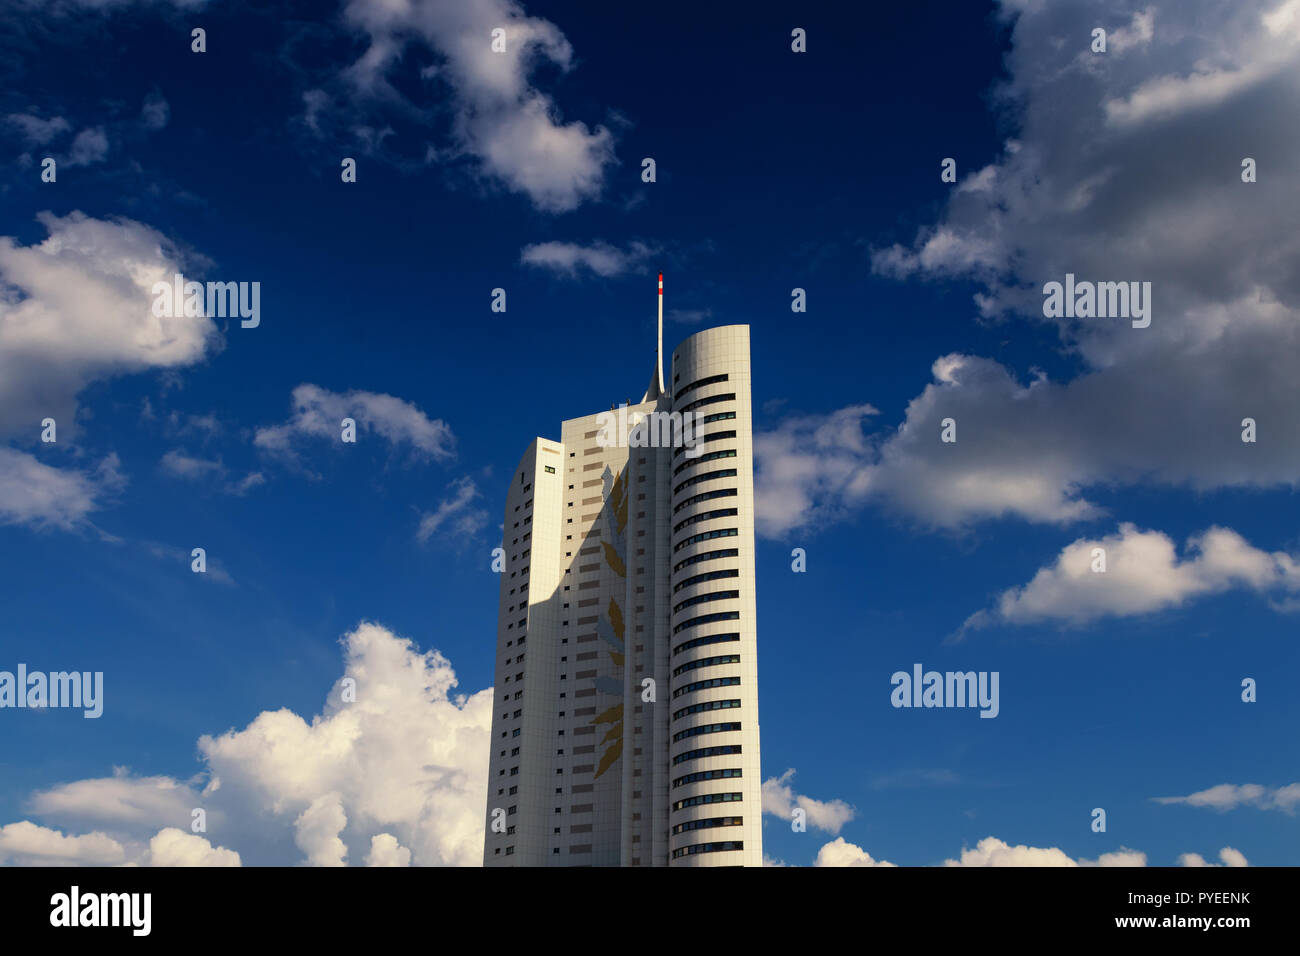 sky scraper with blue sky and clouds in vienna - Stock Image